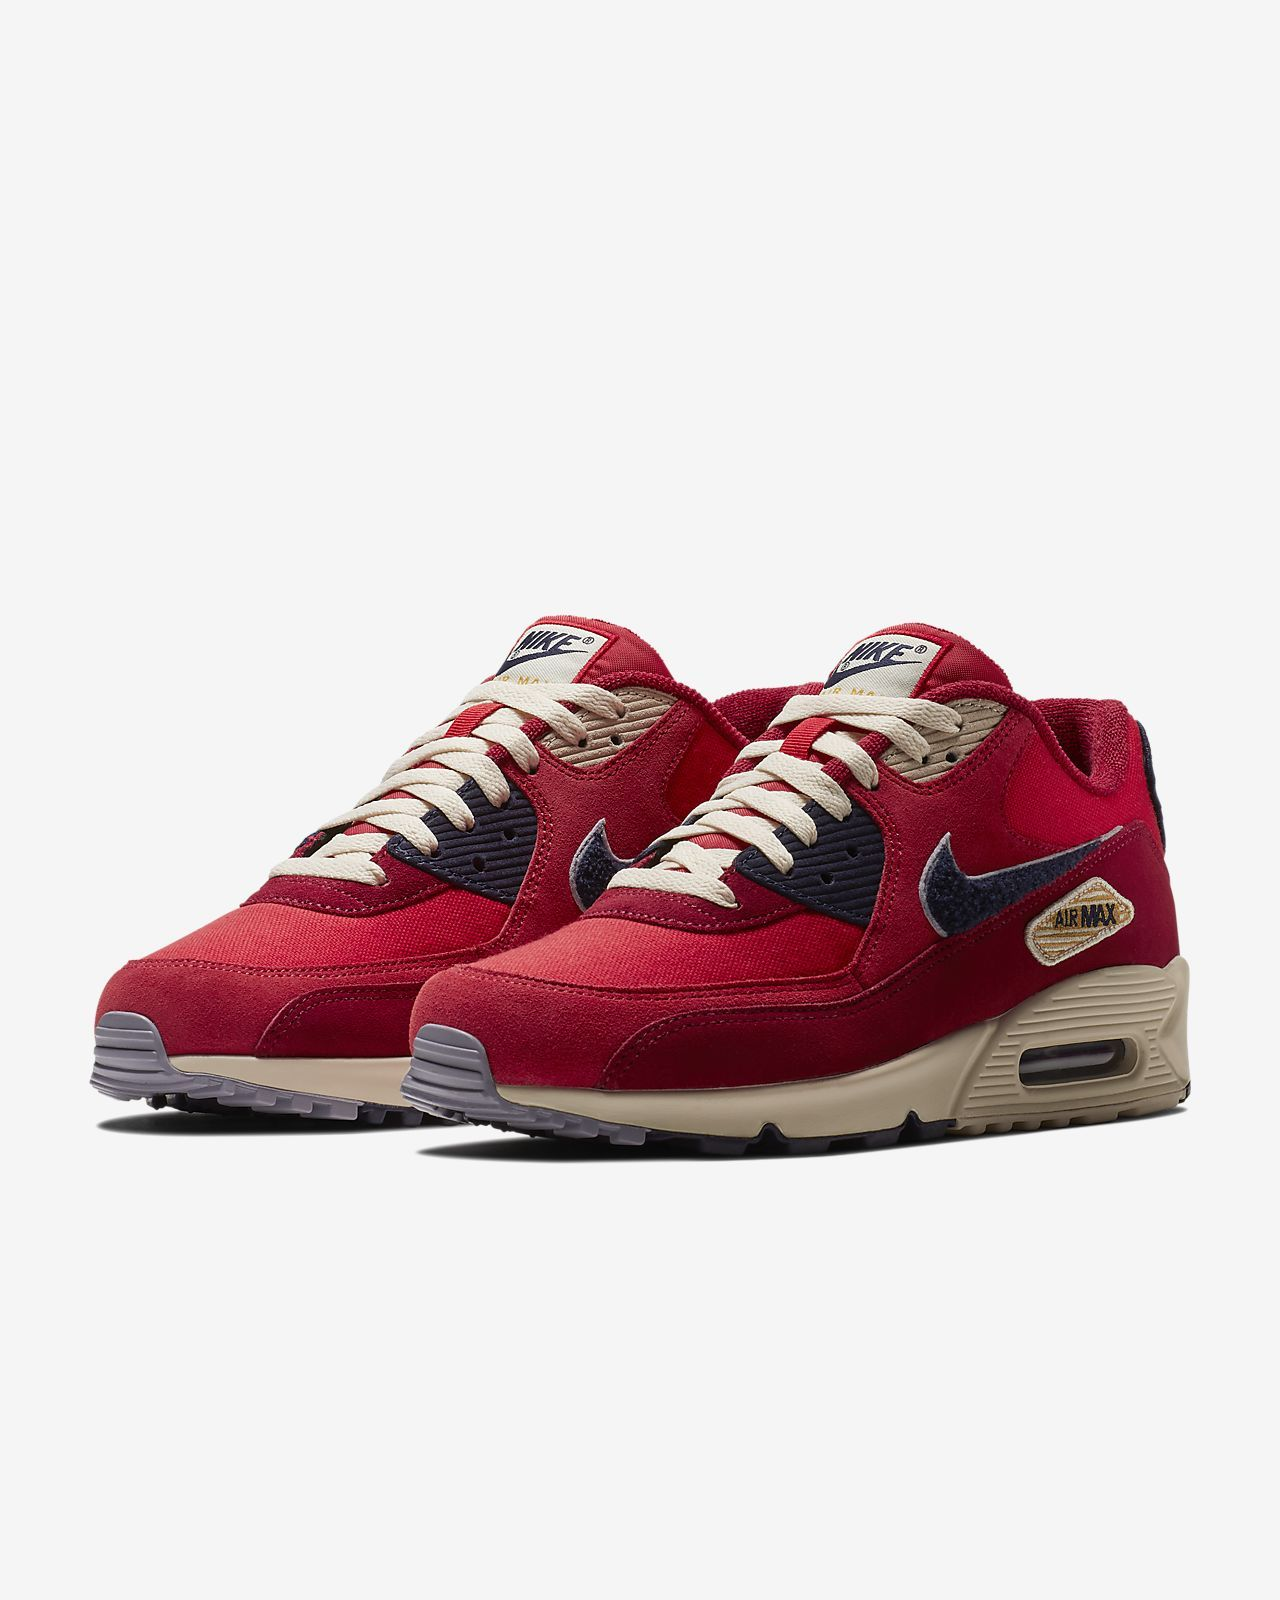 06a7eb811aa0 Nike Air Max 90 Premium SE Men s Shoe